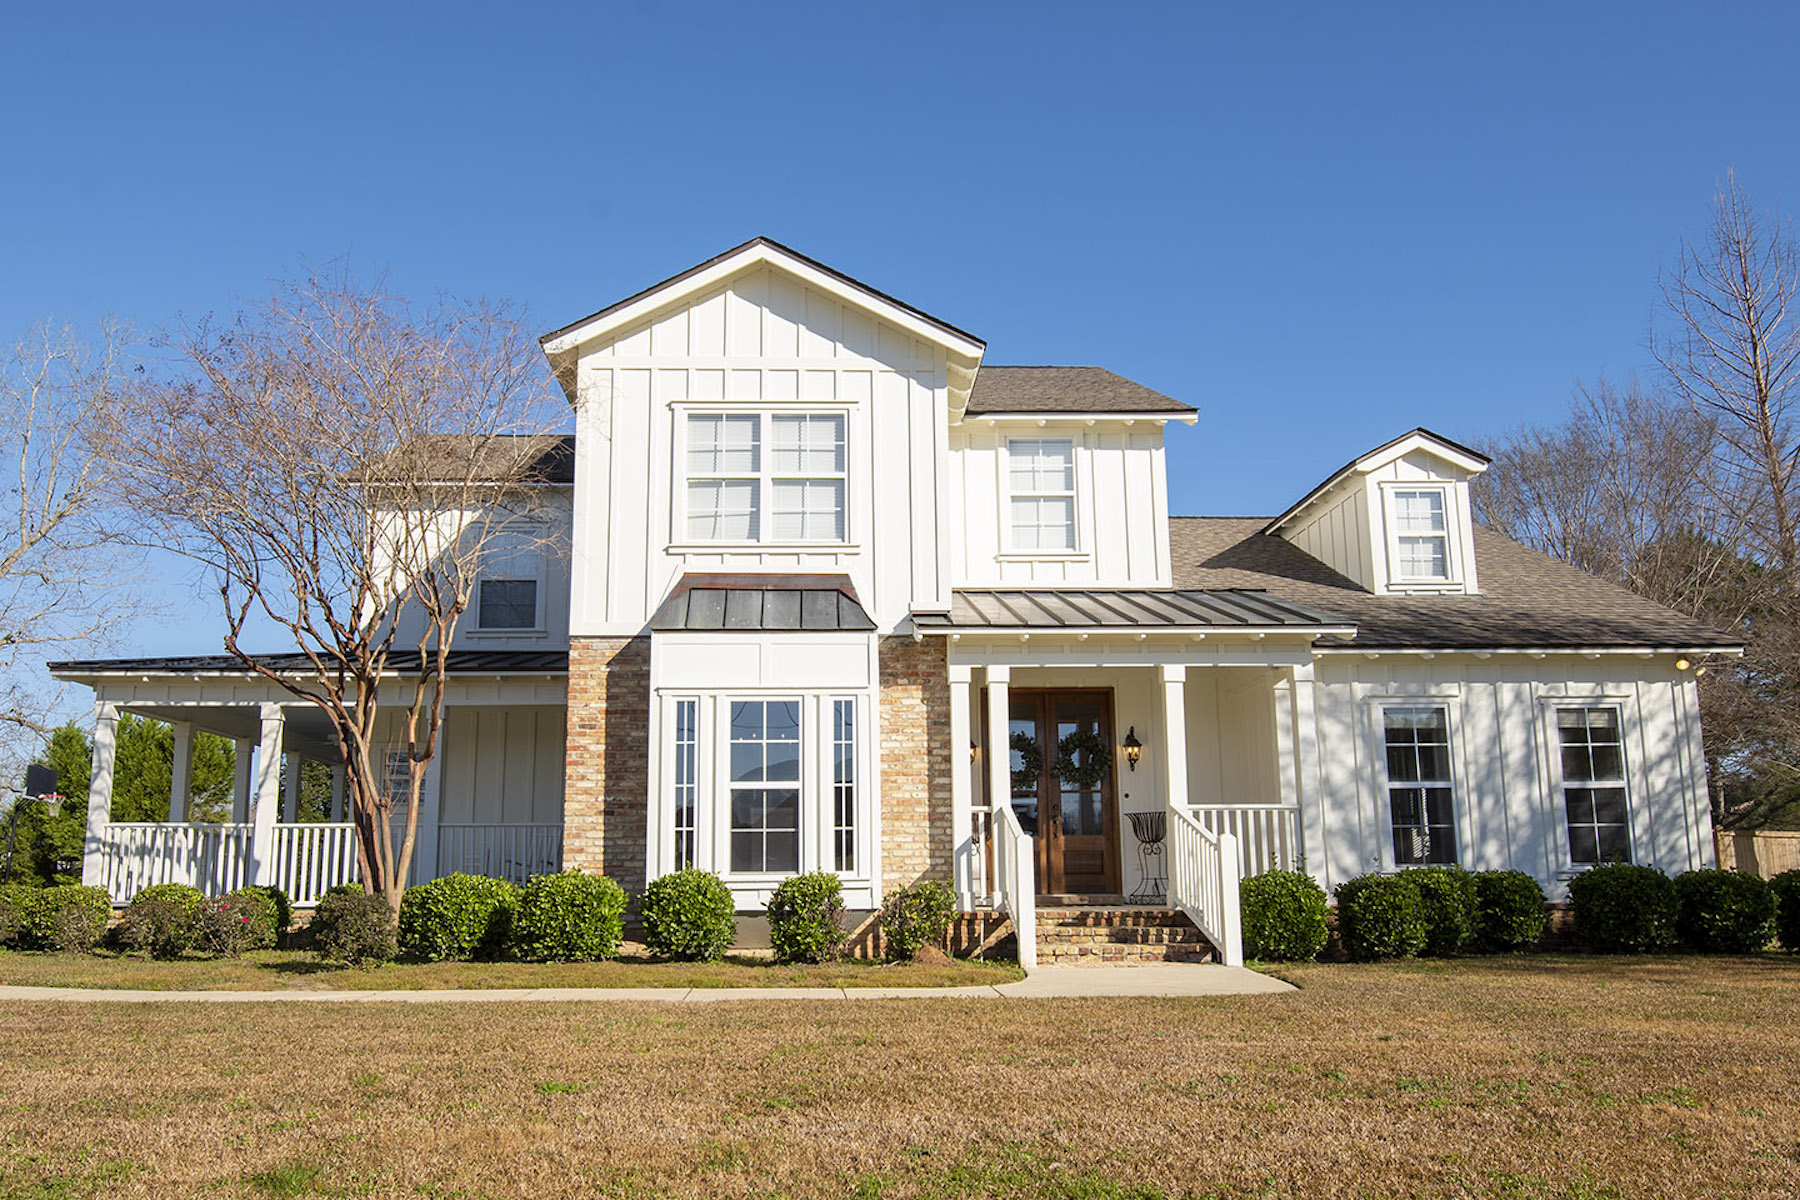 Single Family Home for Active at 9129 Gayfer Road Ext Fairhope, Alabama 36532 United States